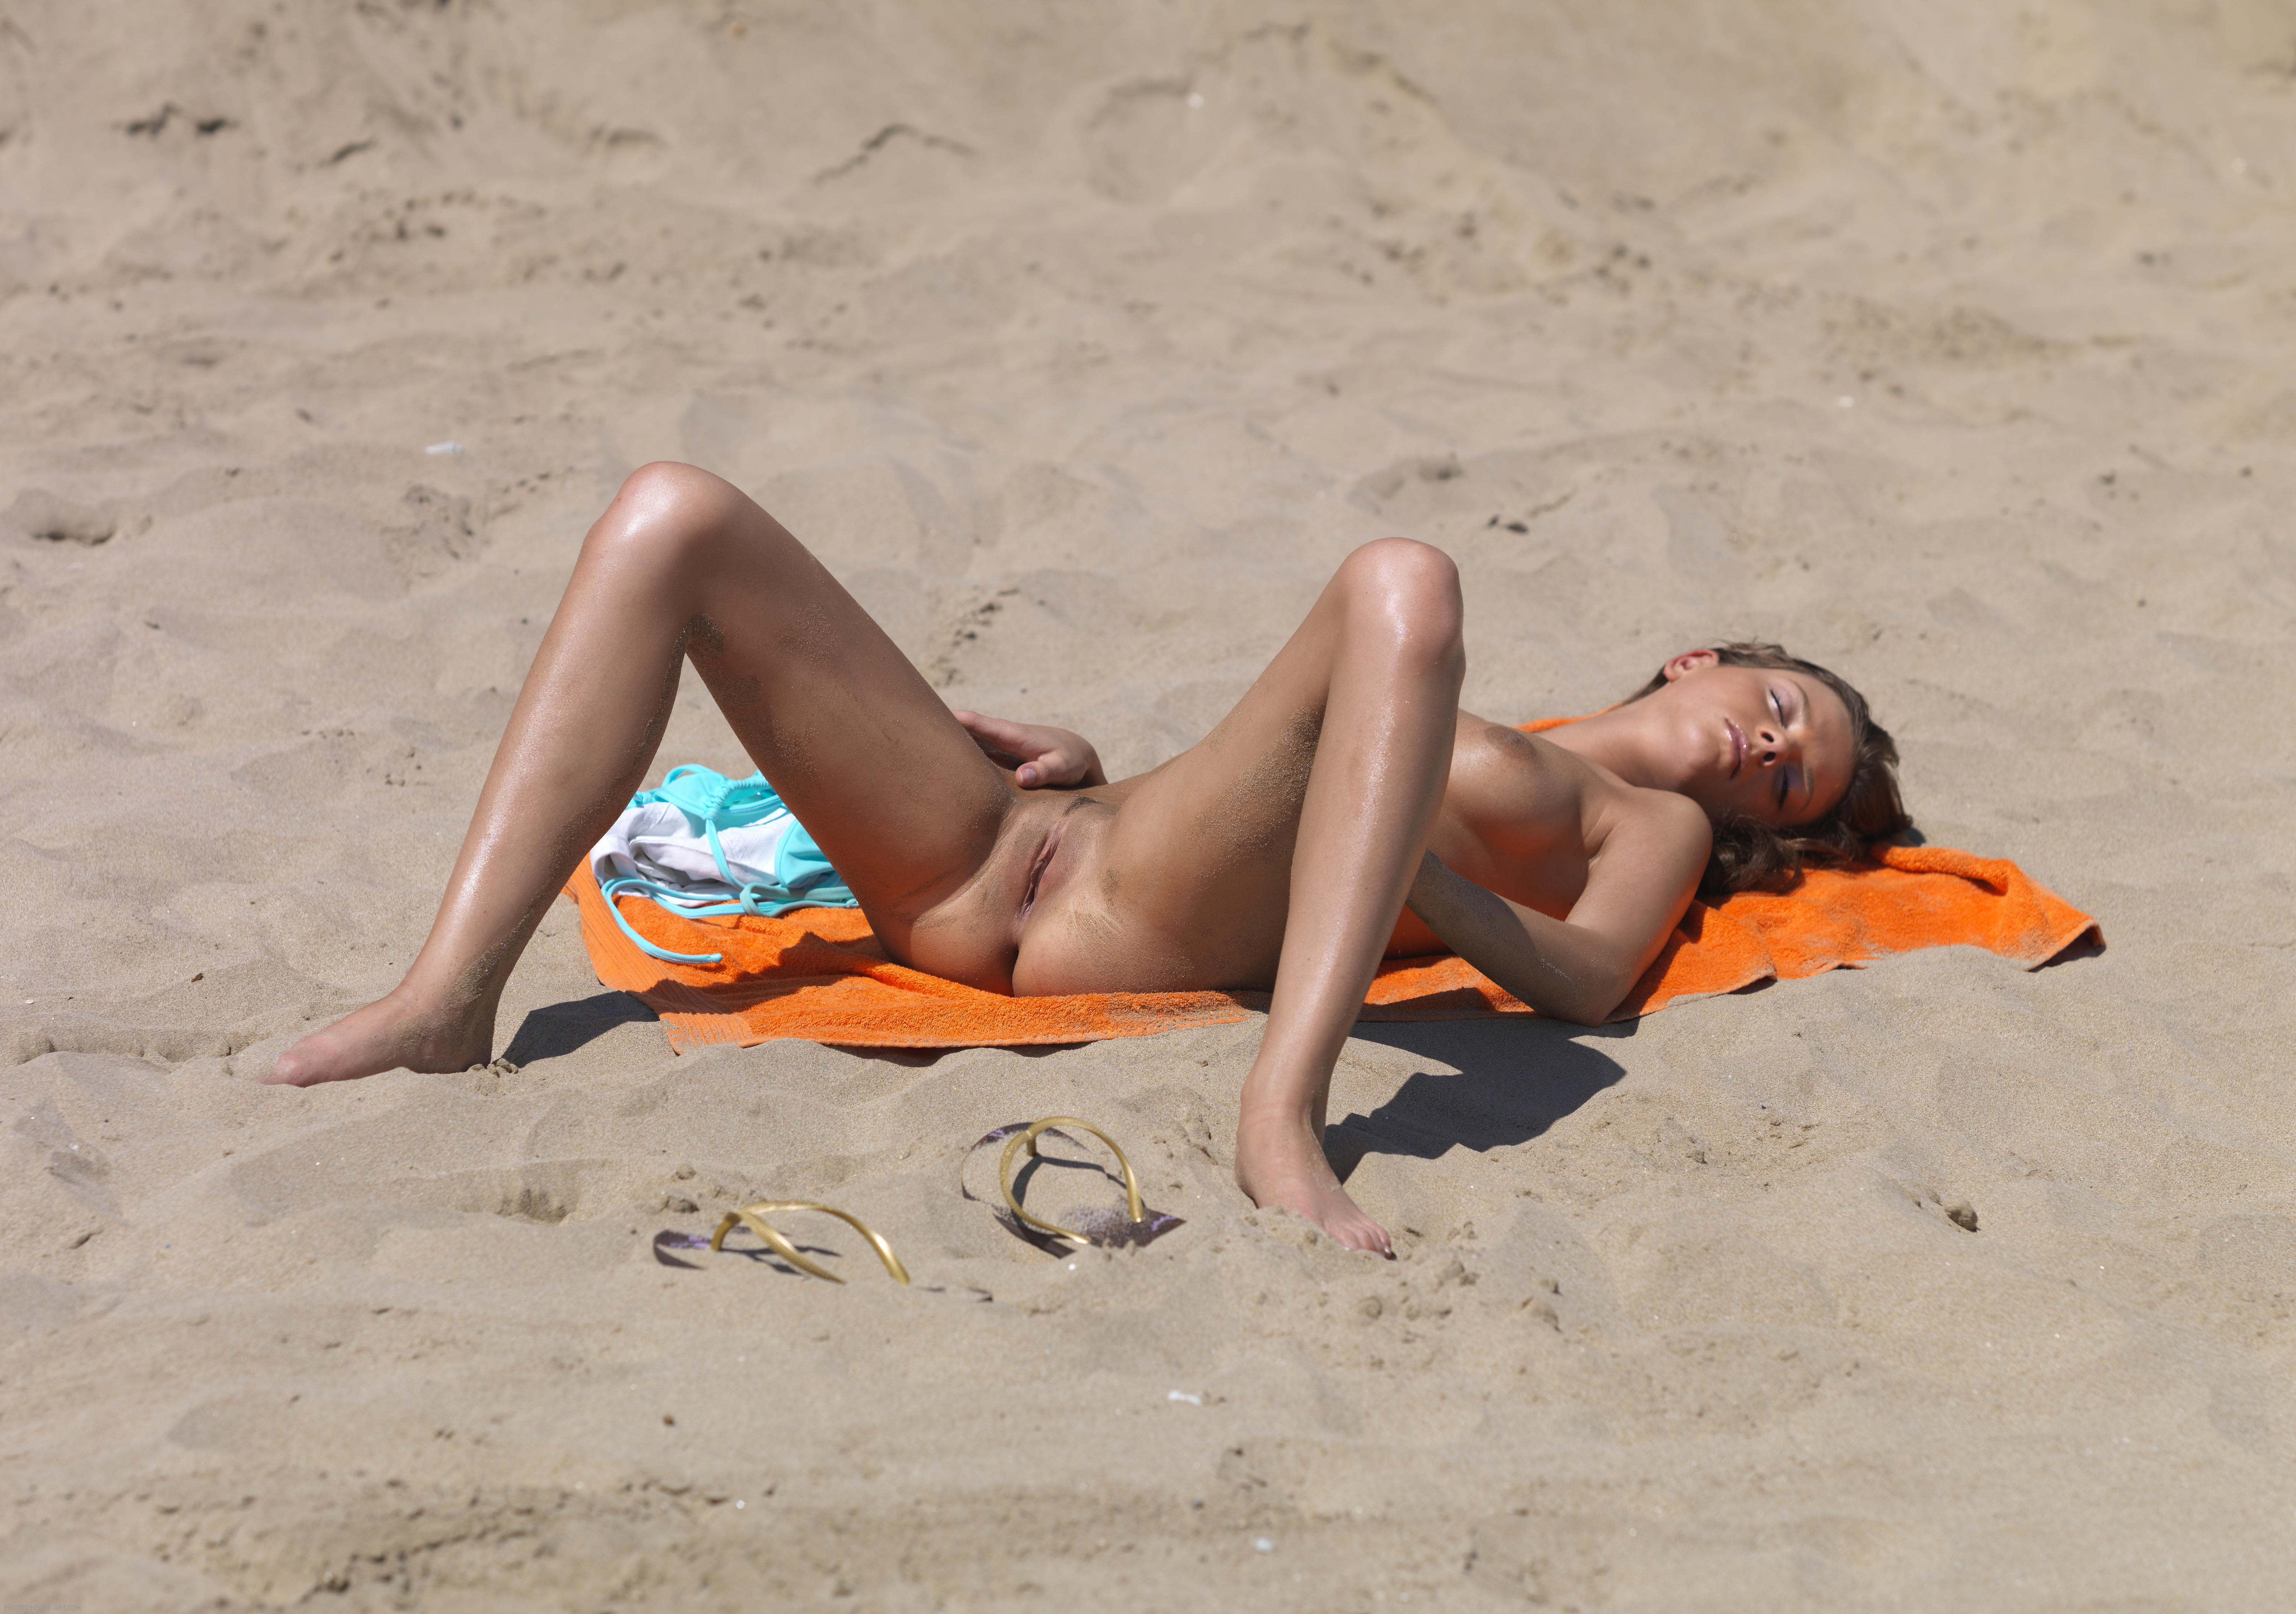 Apologise, but, Stasha nudist beach